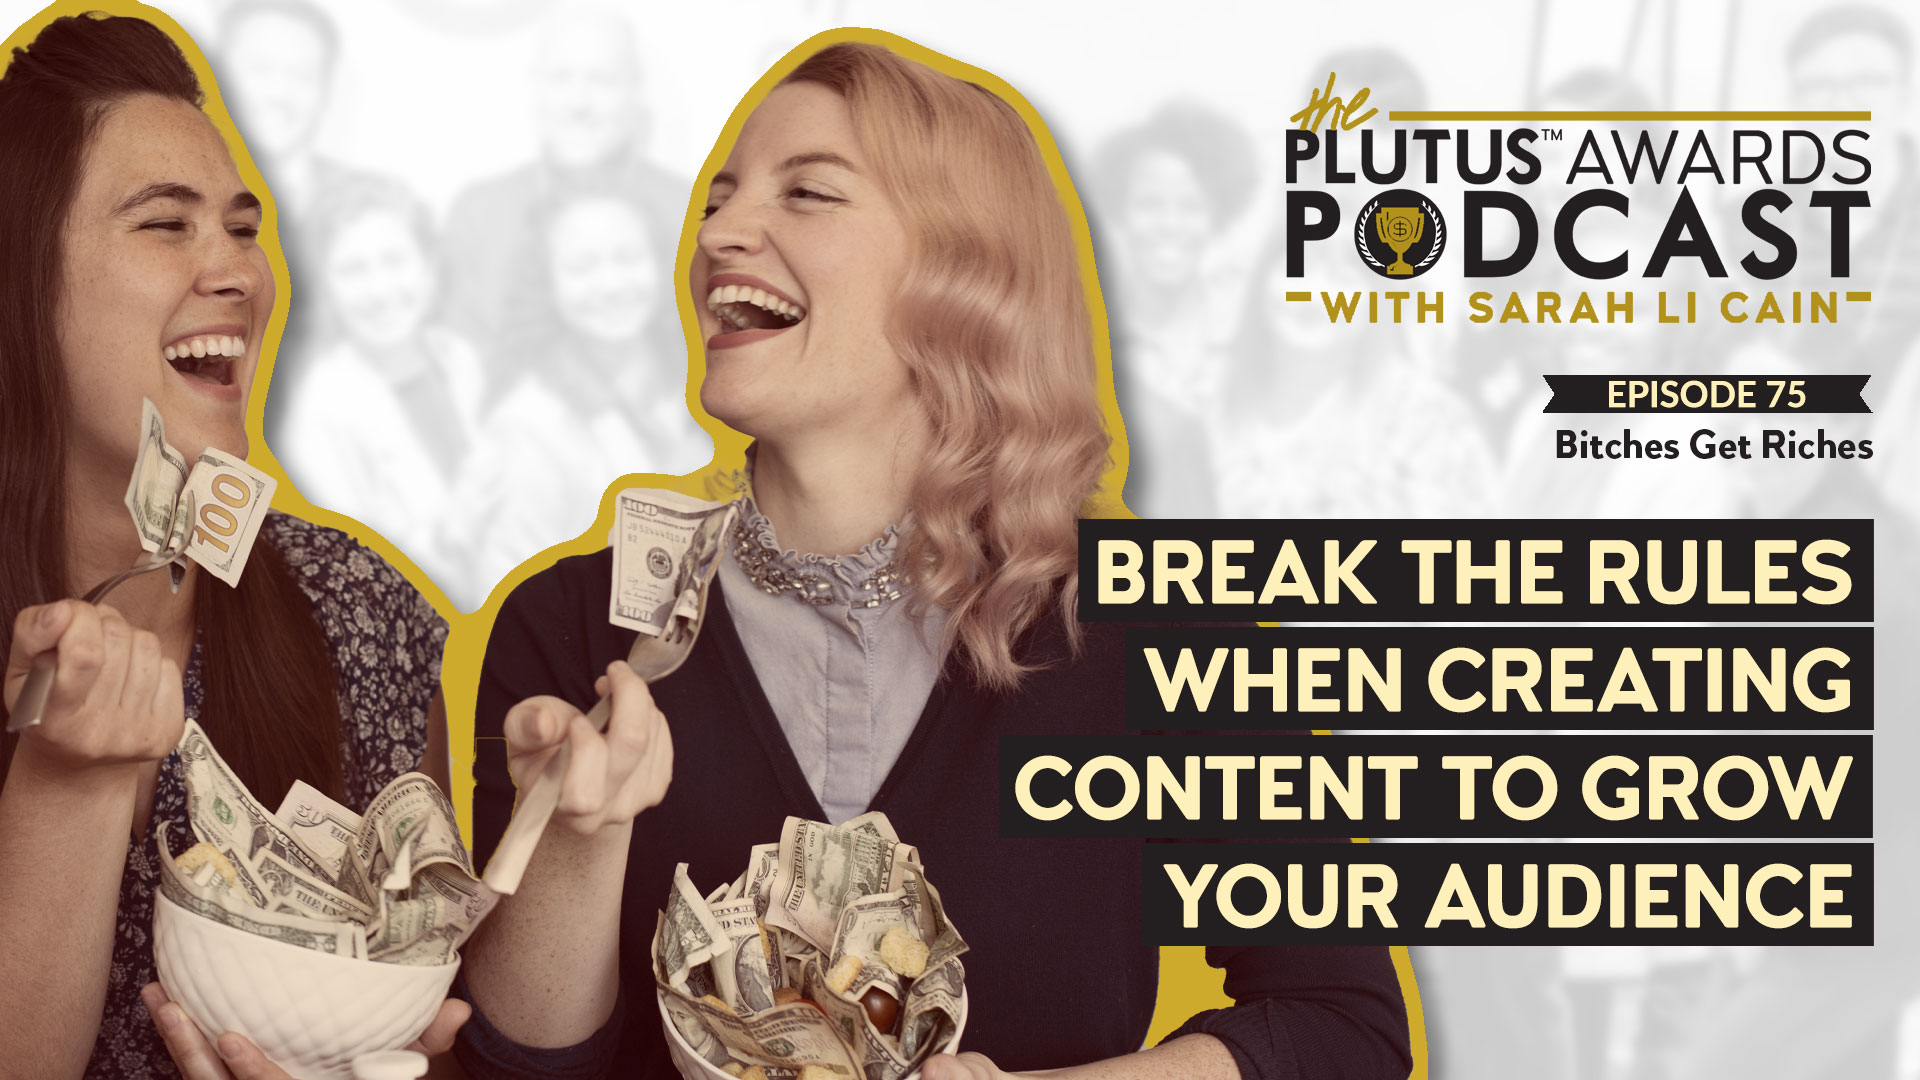 Plutus Awards Podcast - Bitches Get Riches Featured Image